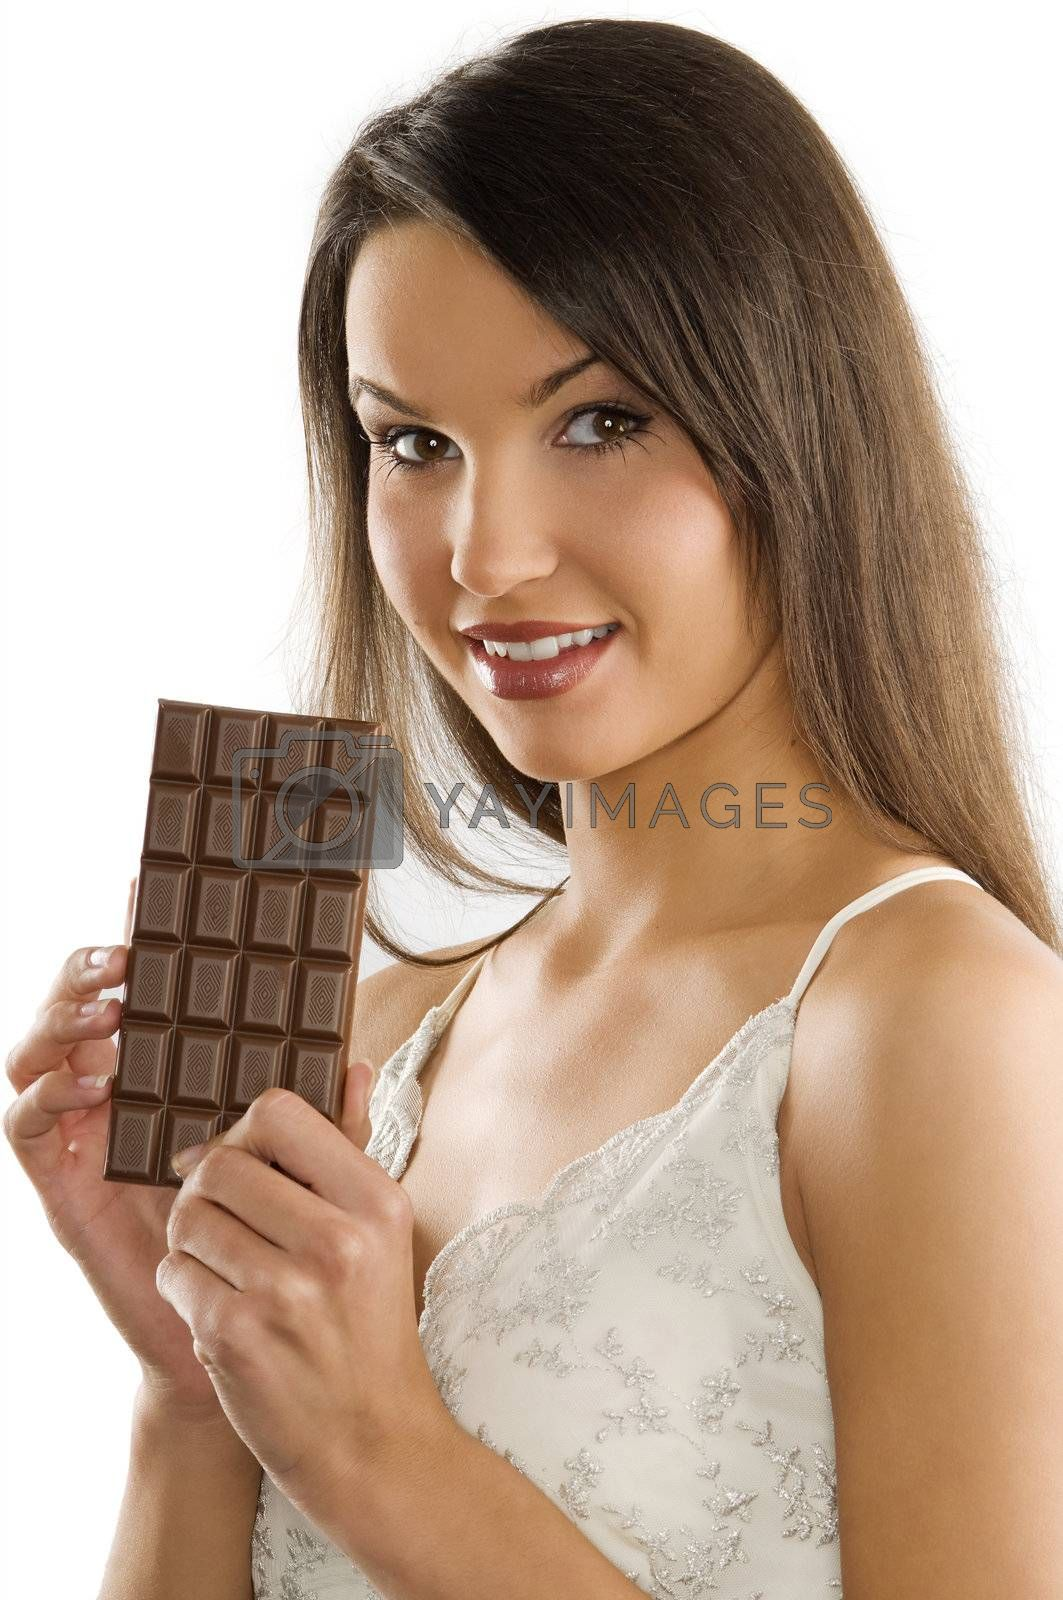 brunette in white dress showing a block of chocolate smiling